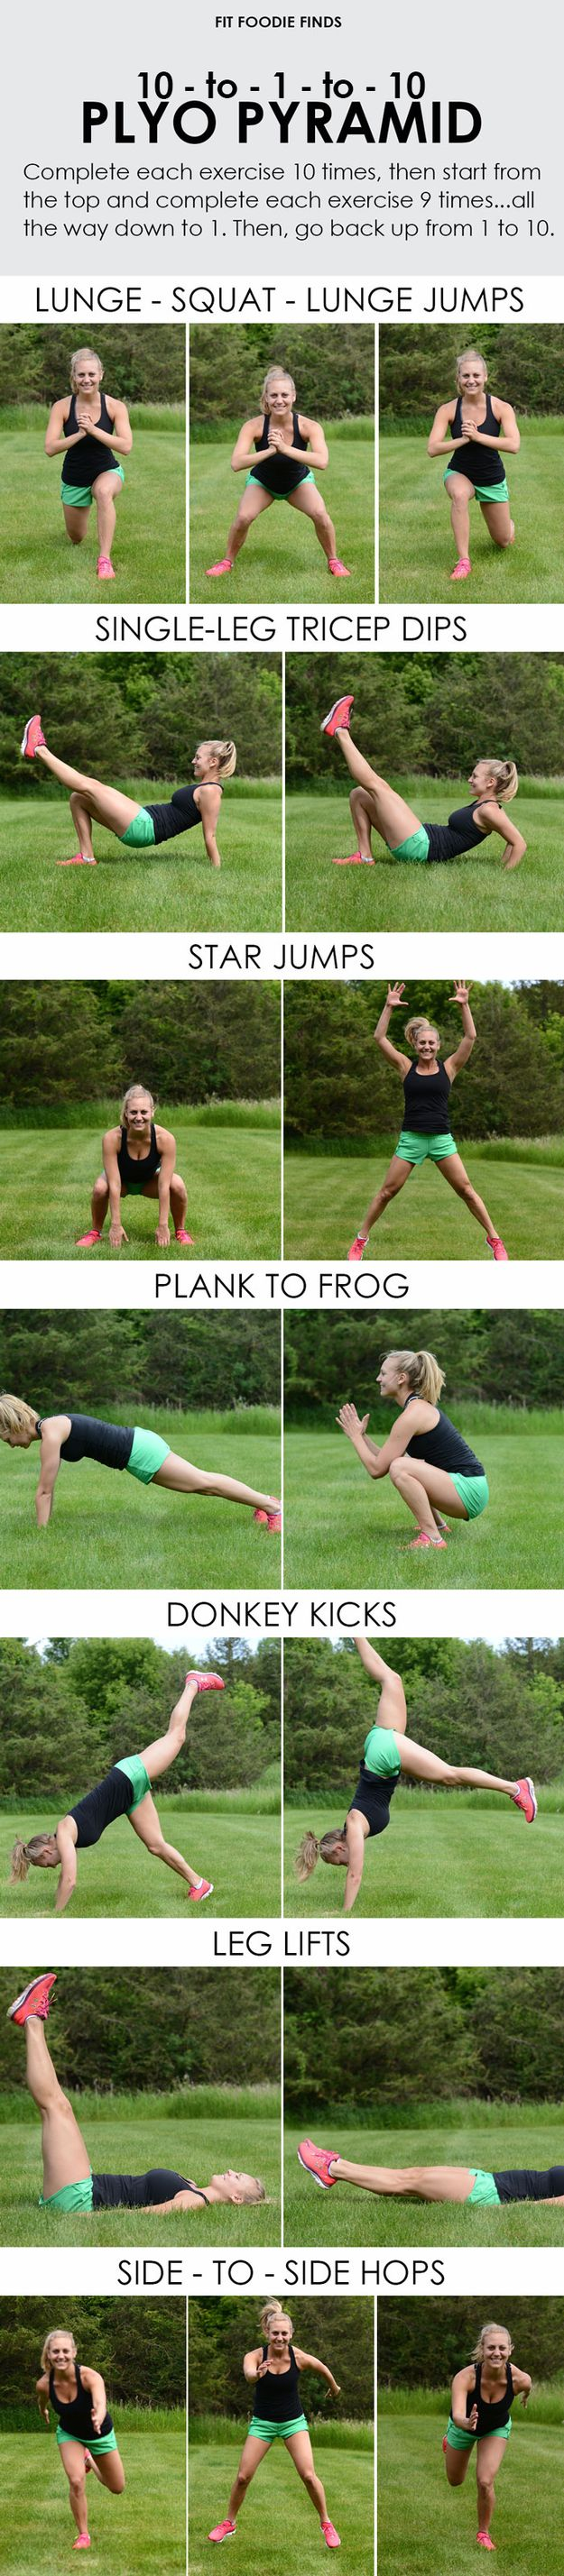 How to beat workout boredom with a fun plyometric workout...